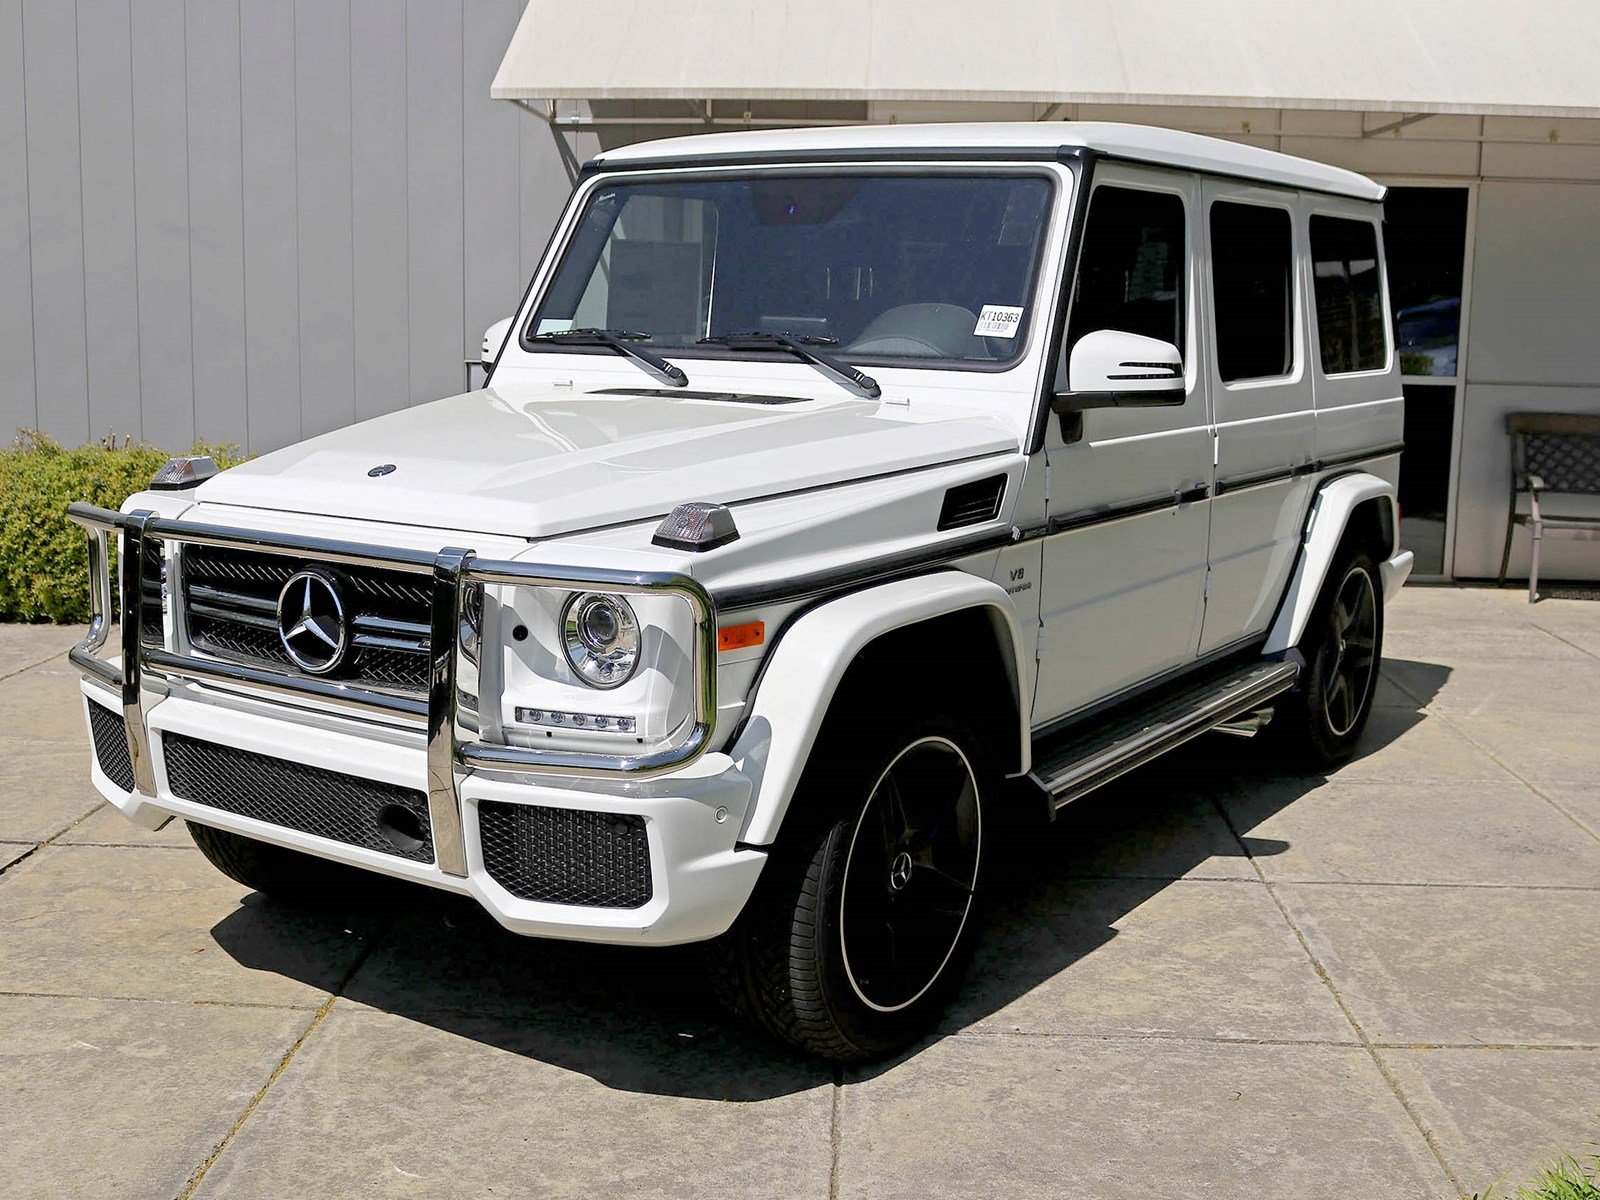 Lovely 2016 G-class Mercedes-benz